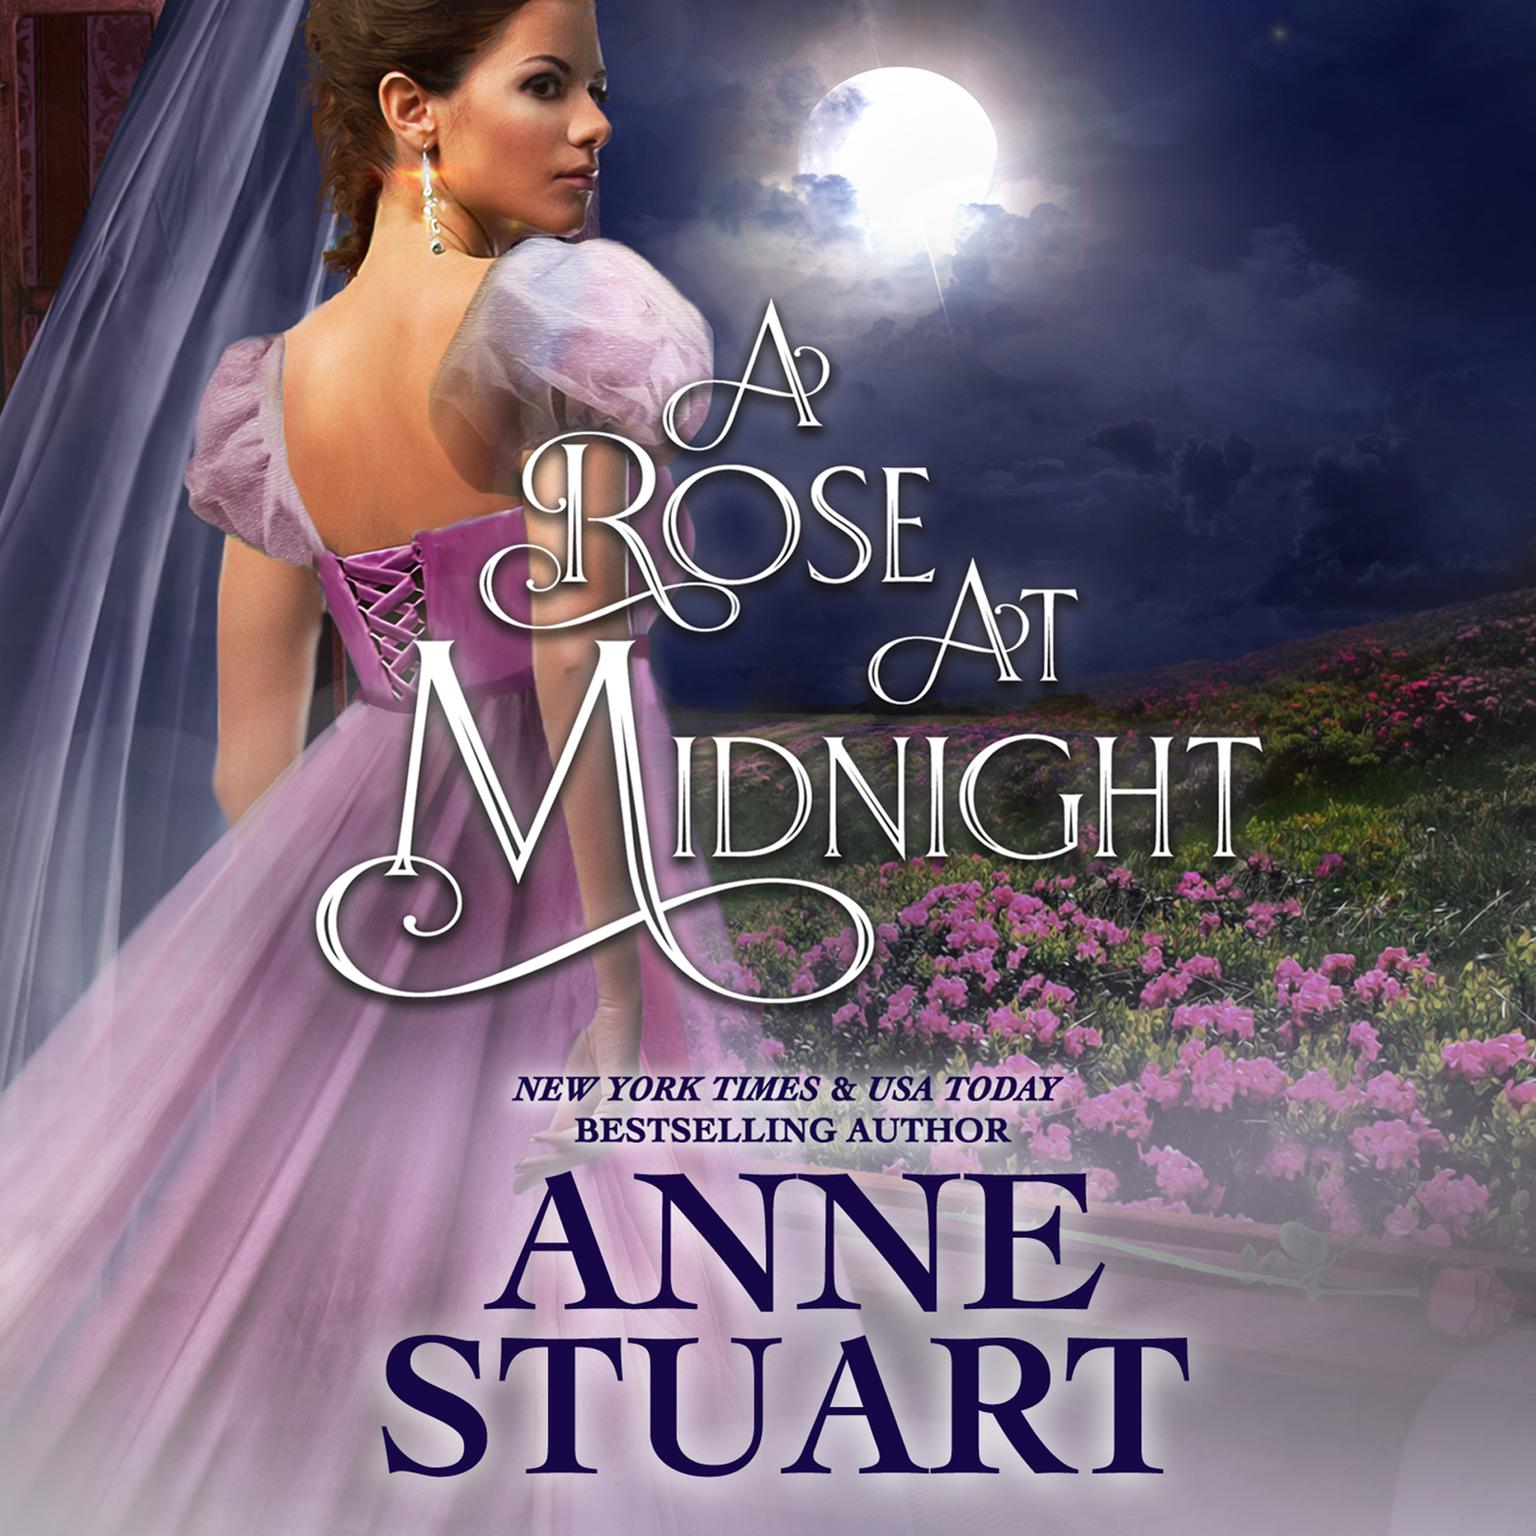 Printable A Rose at Midnight Audiobook Cover Art